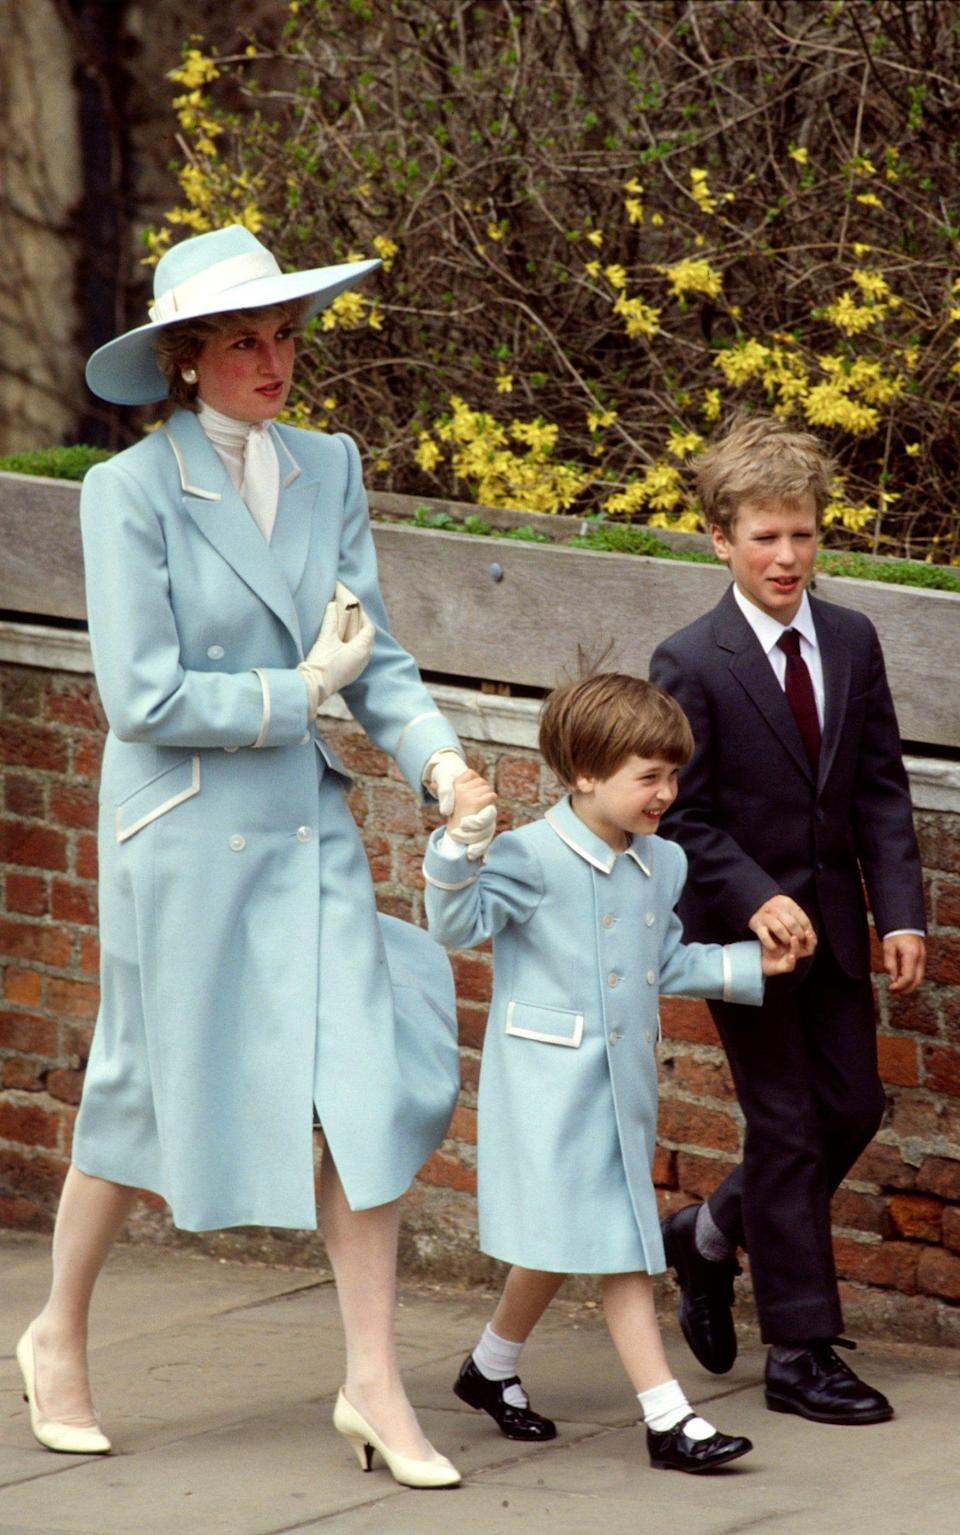 Diana, William and Peter Phillips at Easter in 1987 - Tim Graham